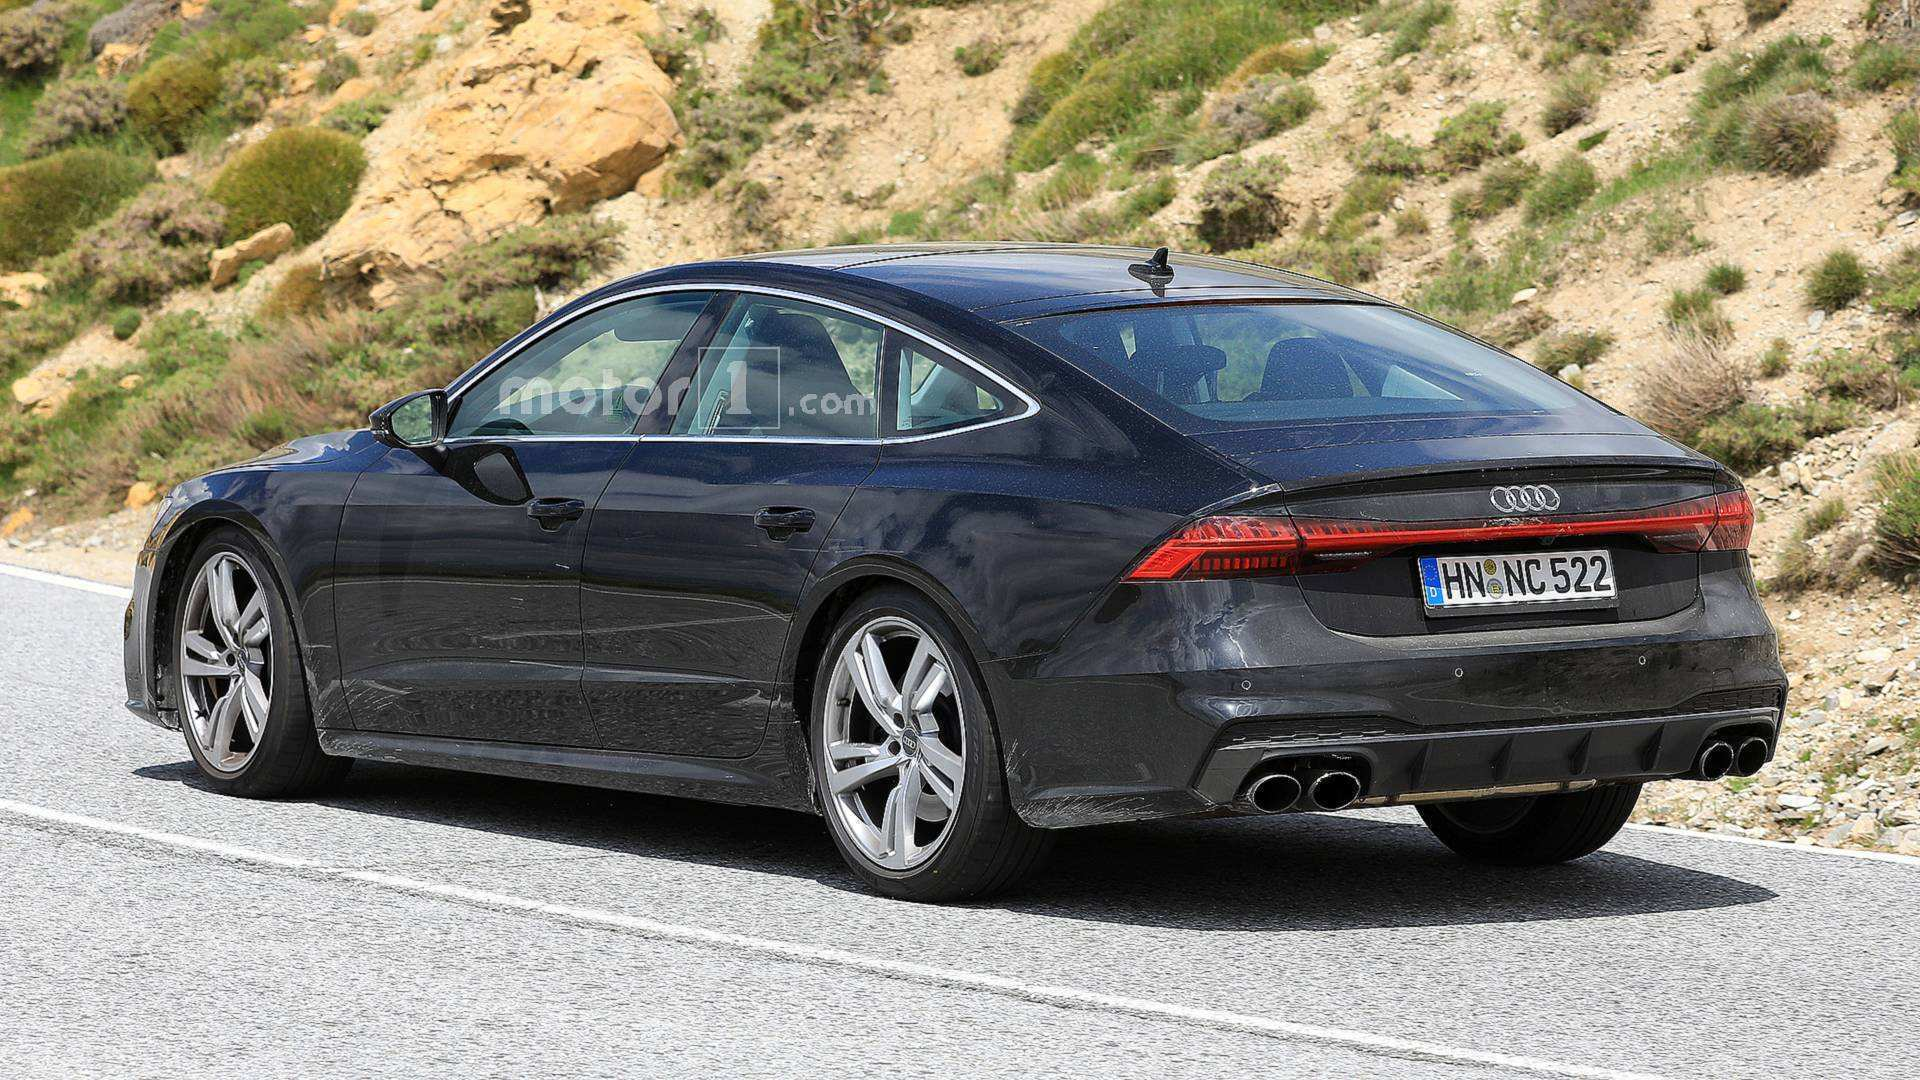 39 All New 2020 Audi S7 Overview